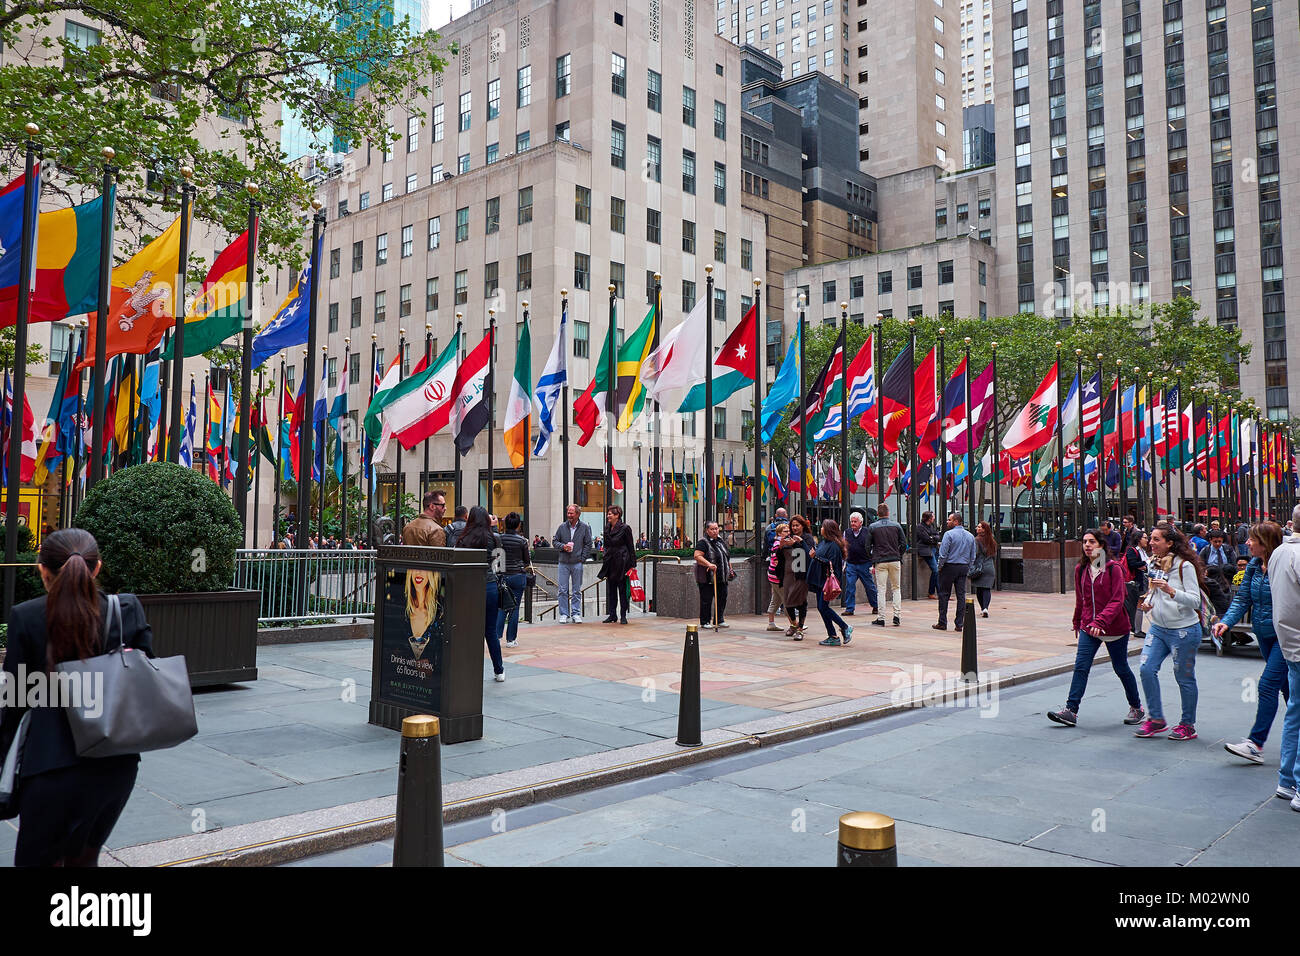 NEW YORK CITY - SEPTEMBER 29, 2016: Many people walking on the pedestrian are around Rockefeller Plaza with all - Stock Image